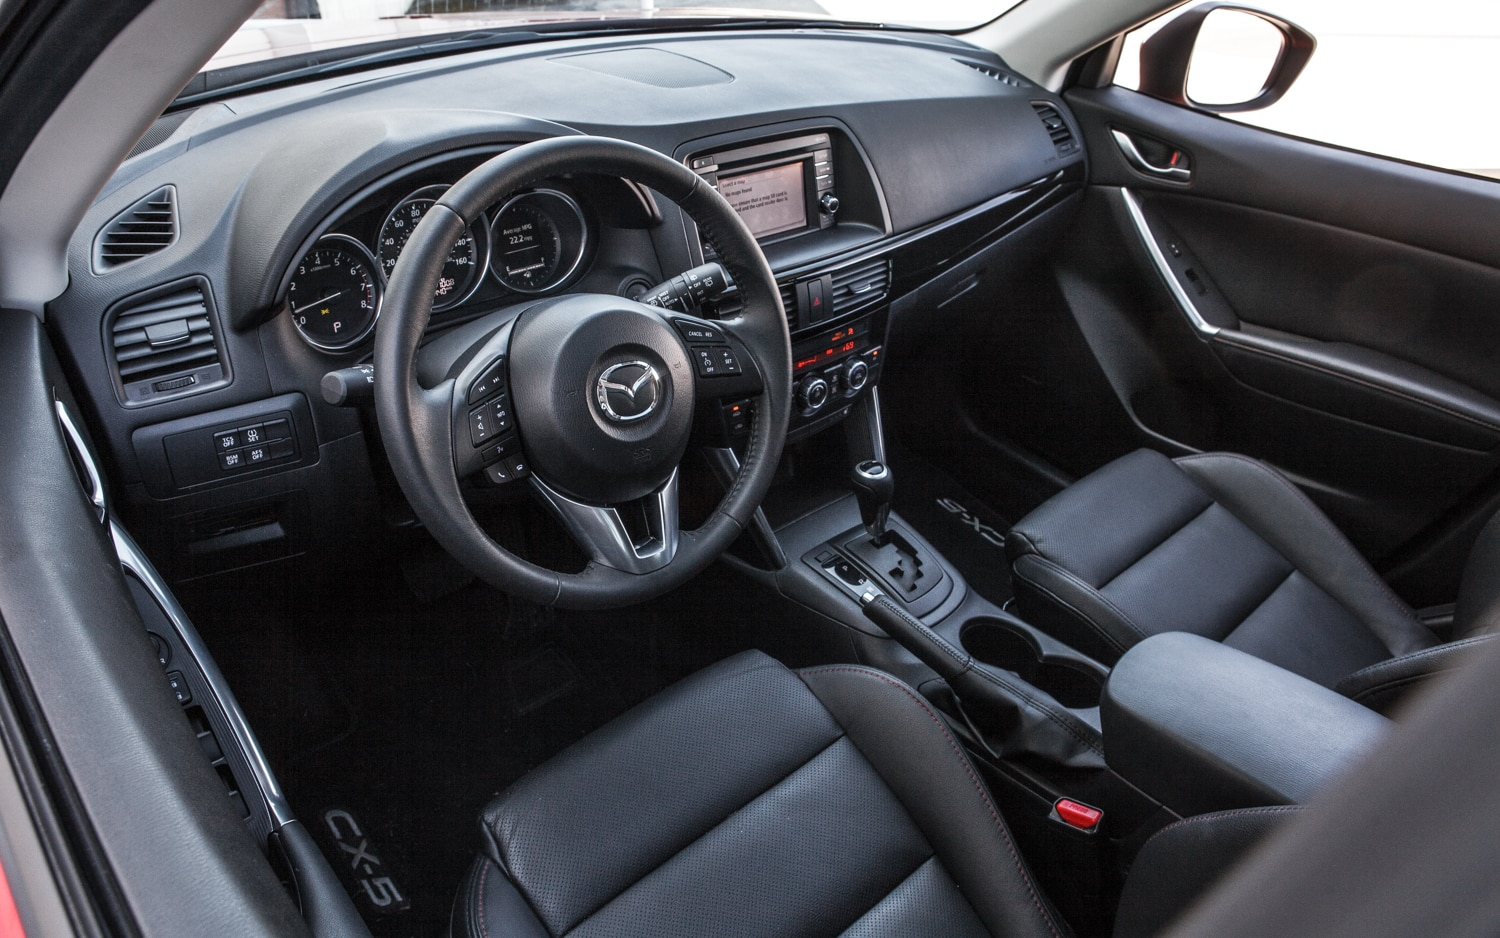 2014 mazda cx-5 grand touring - editors' notebook - automobile magazine